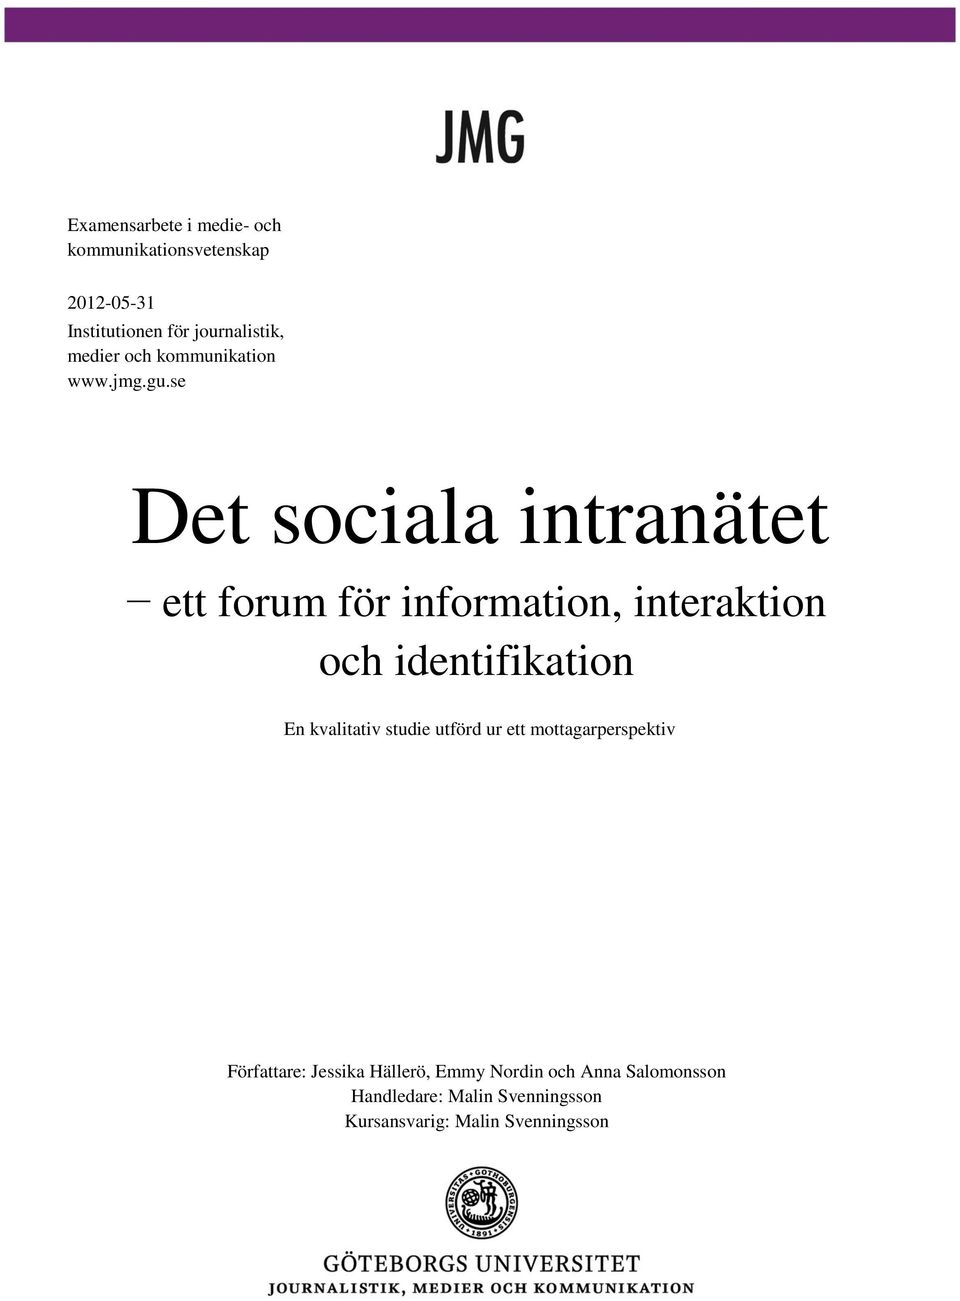 se Det sociala intranätet ett forum för information, interaktion och identifikation En kvalitativ